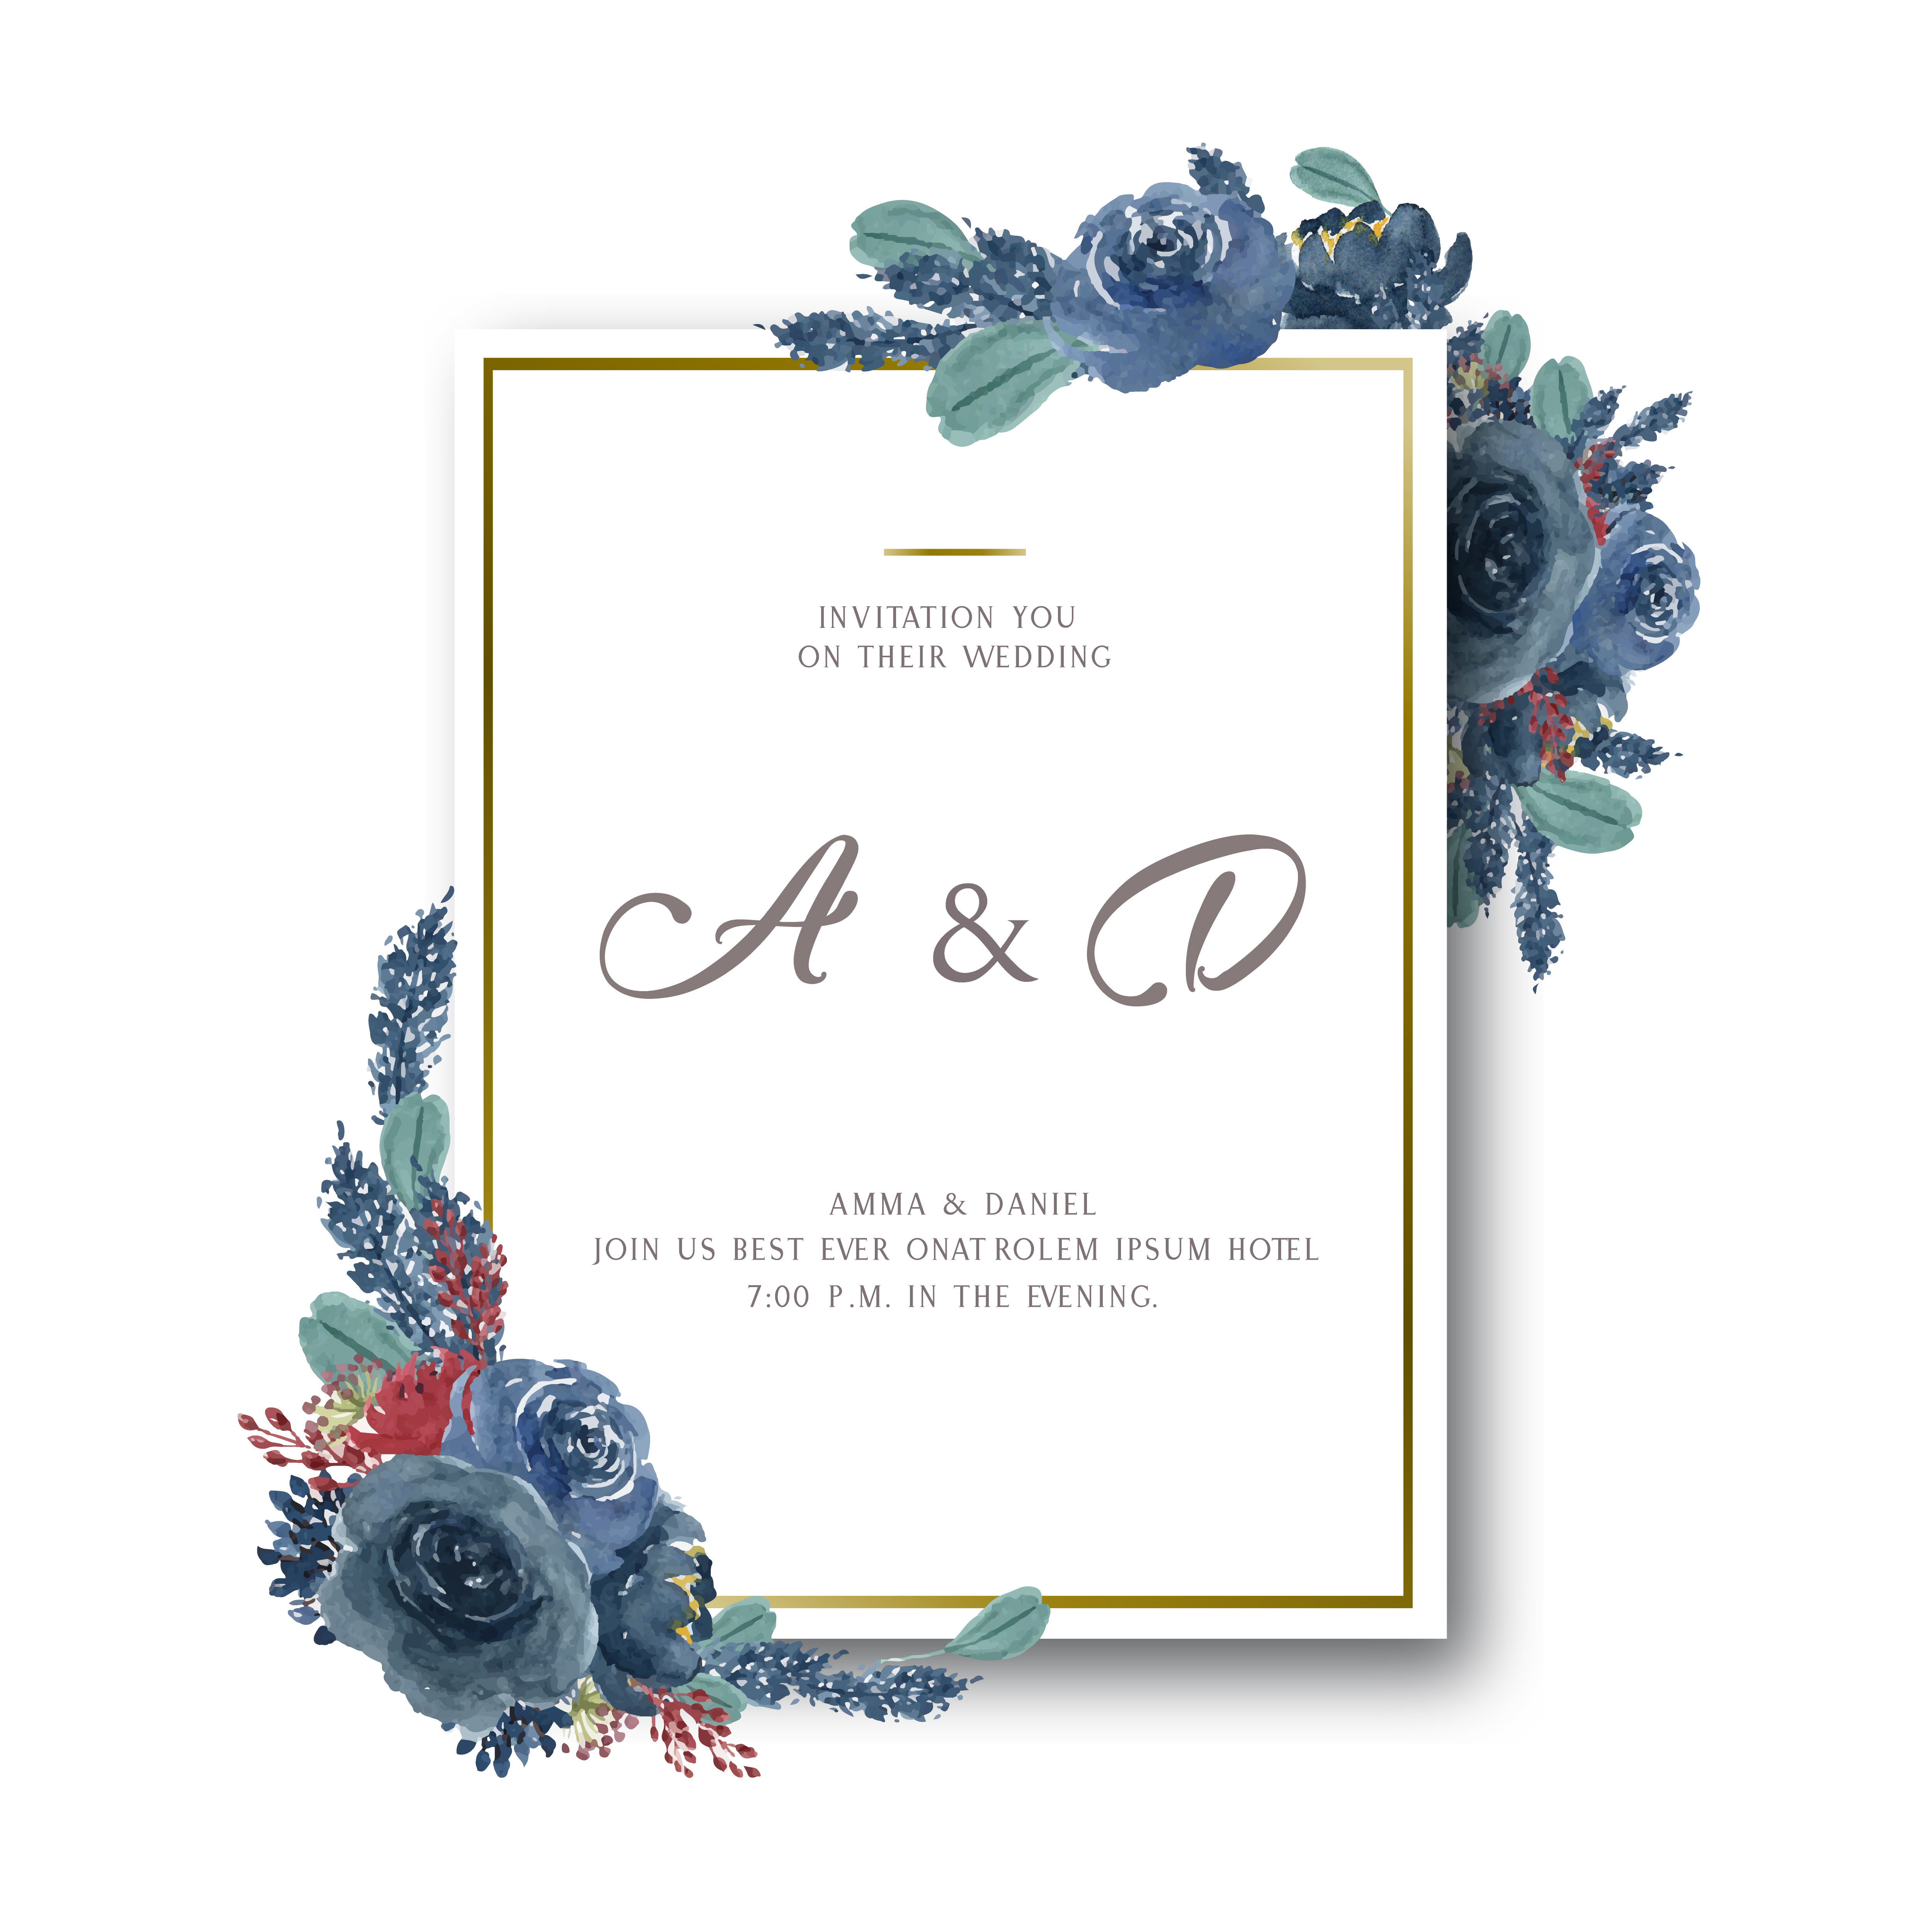 White Wedding Espa L: Watercolor Florals With Text Frame Border, Lush Flowers